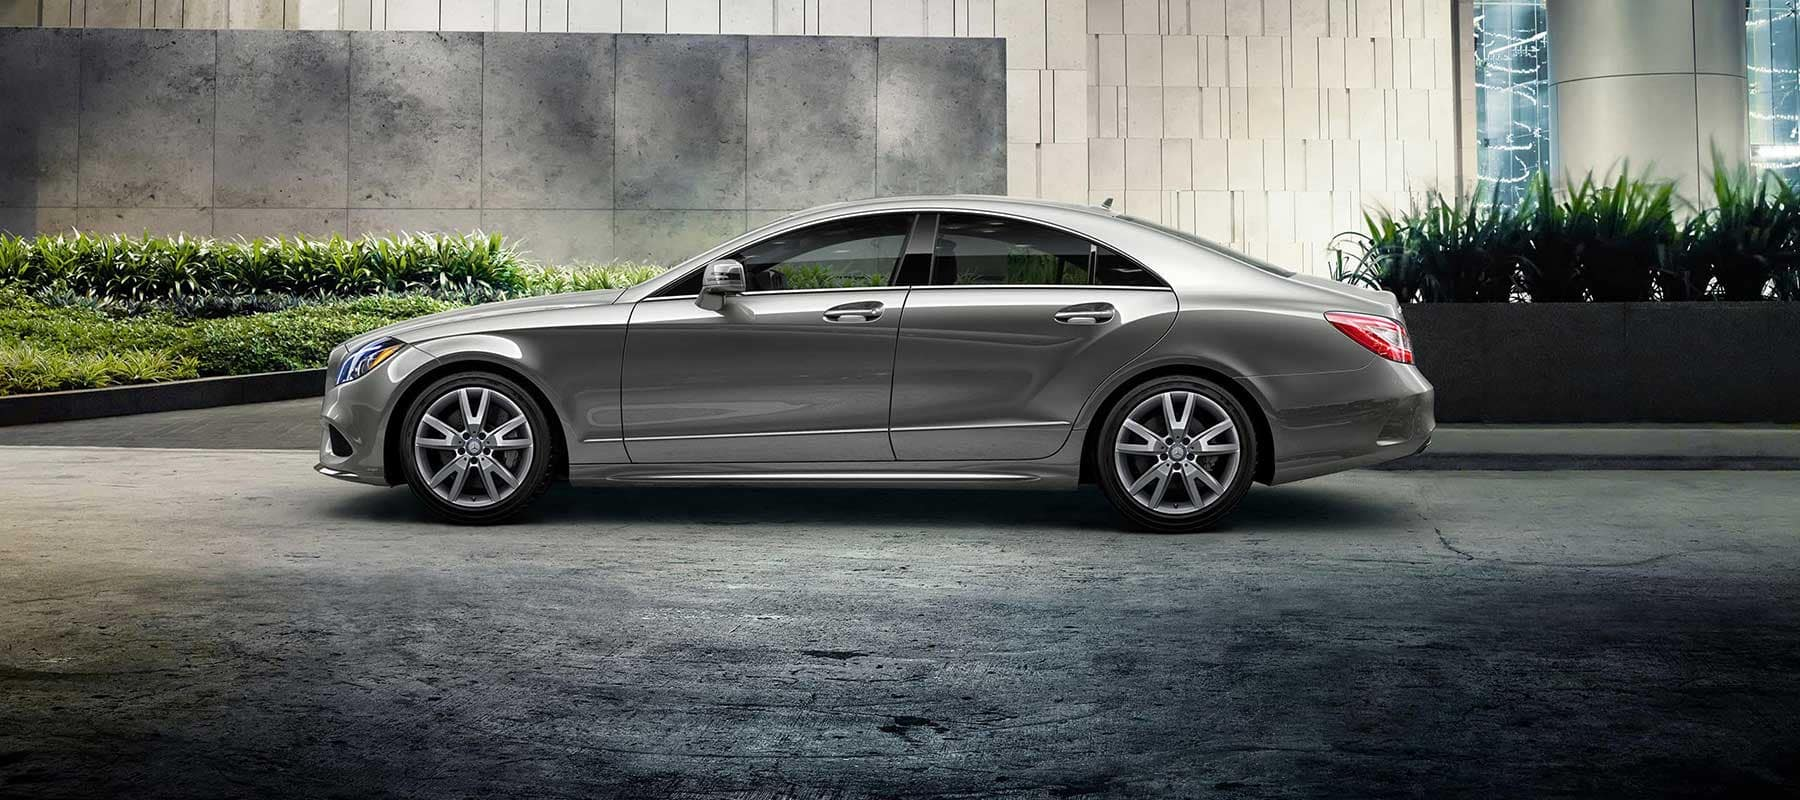 2018 mercedes benz cls 550 coupe info safety design for Mercedes benz cls 550